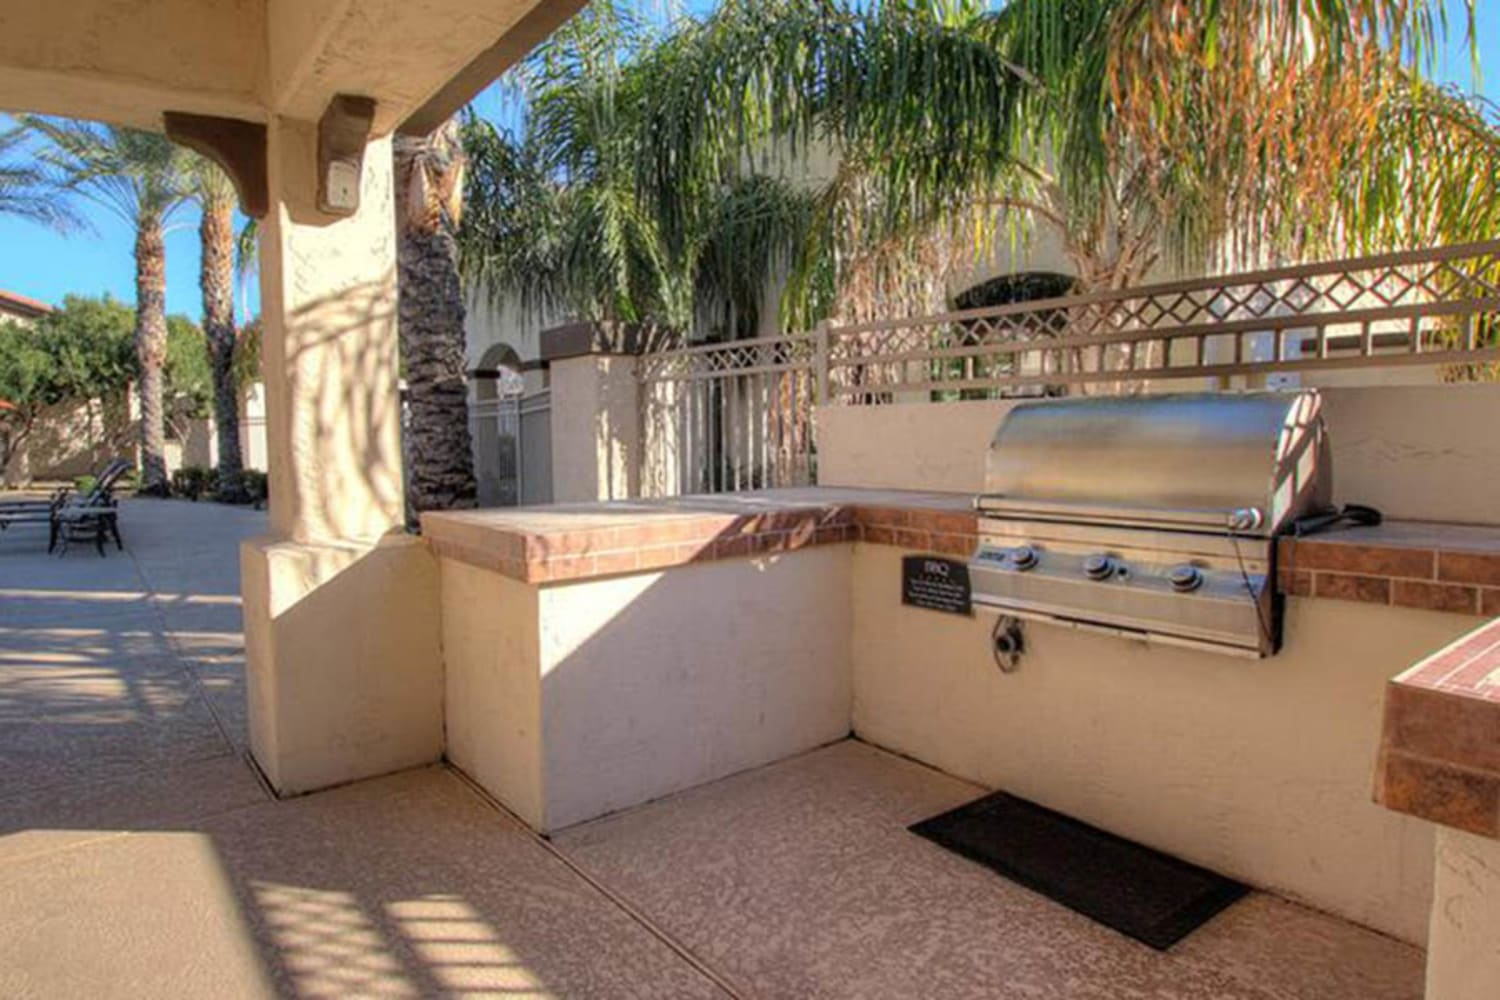 Dobson 2222 in Chandler, Arizona, offers an outdoor barbecue area